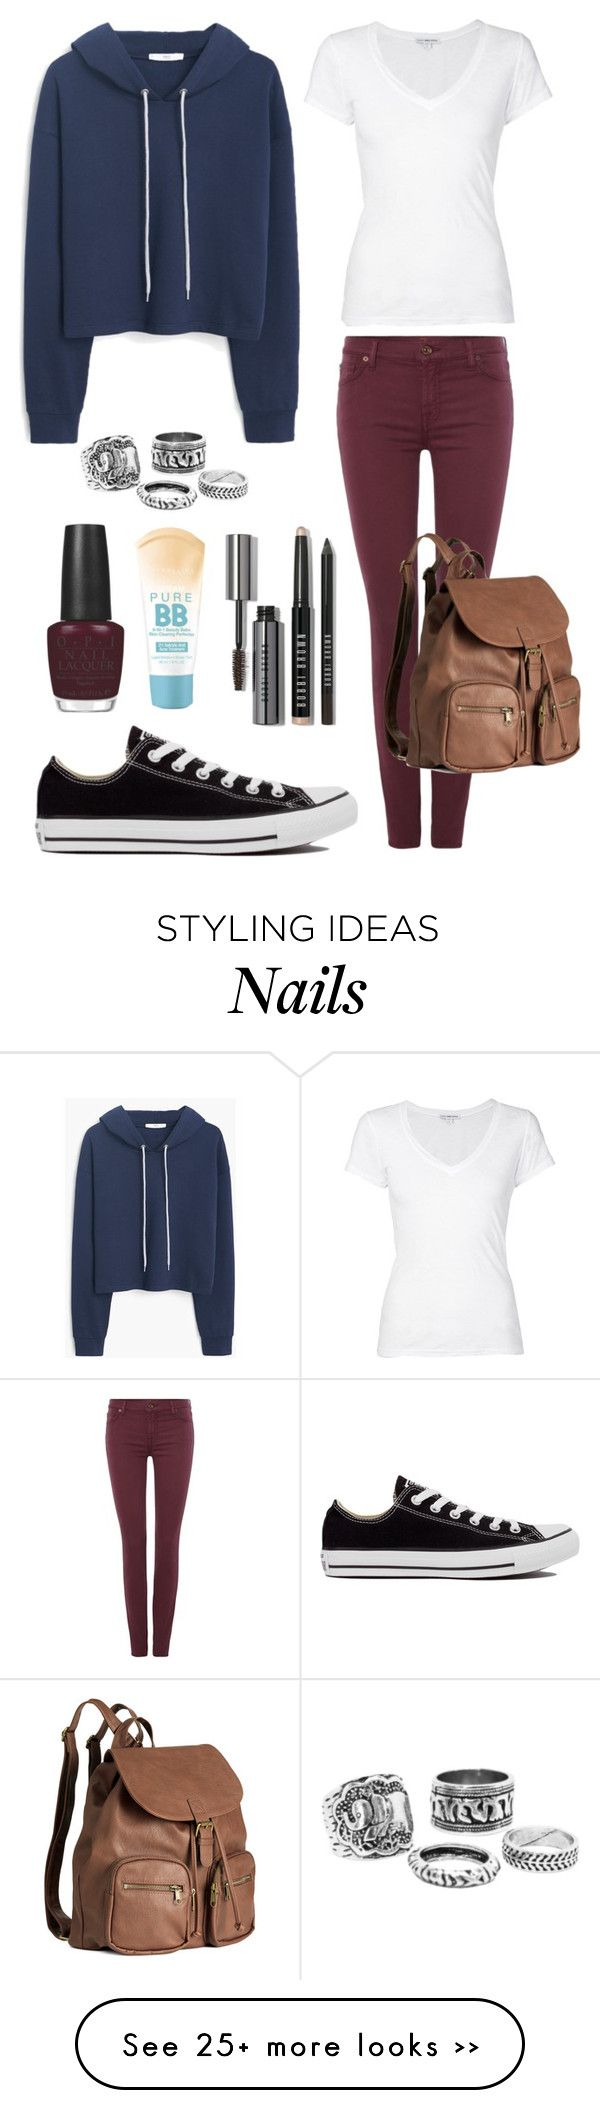 """""""Back to School Outfit"""" by sophiesayshi on Polyvore featuring MANGO, 7 For All Mankind, Converse, H&M, James Perse, Bobbi Brown Cosmetics, Maybelline and OPI"""